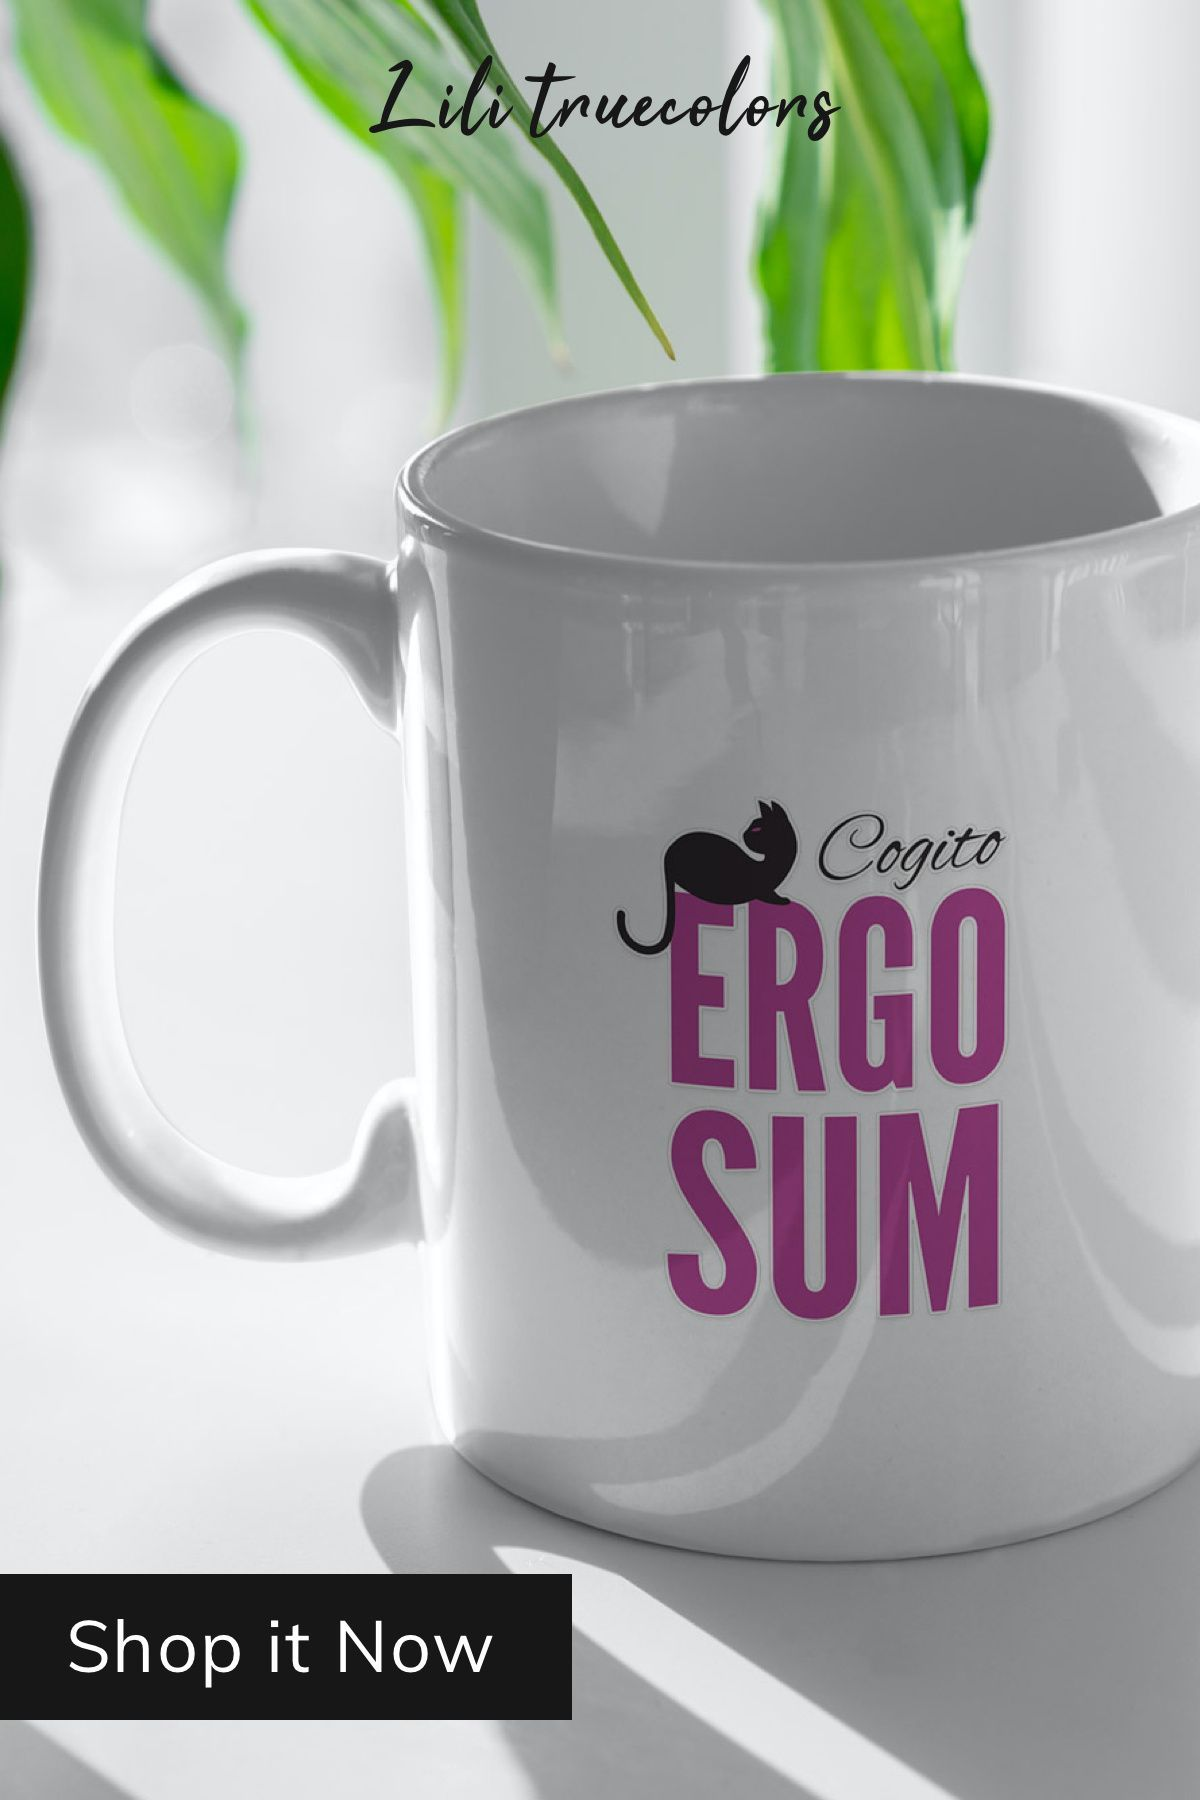 Cogito Ergo Sum Purple Mug By Lilitruecolors Gifts For Female Coworkers Cogito Ergo Sum Girlfriend Gifts